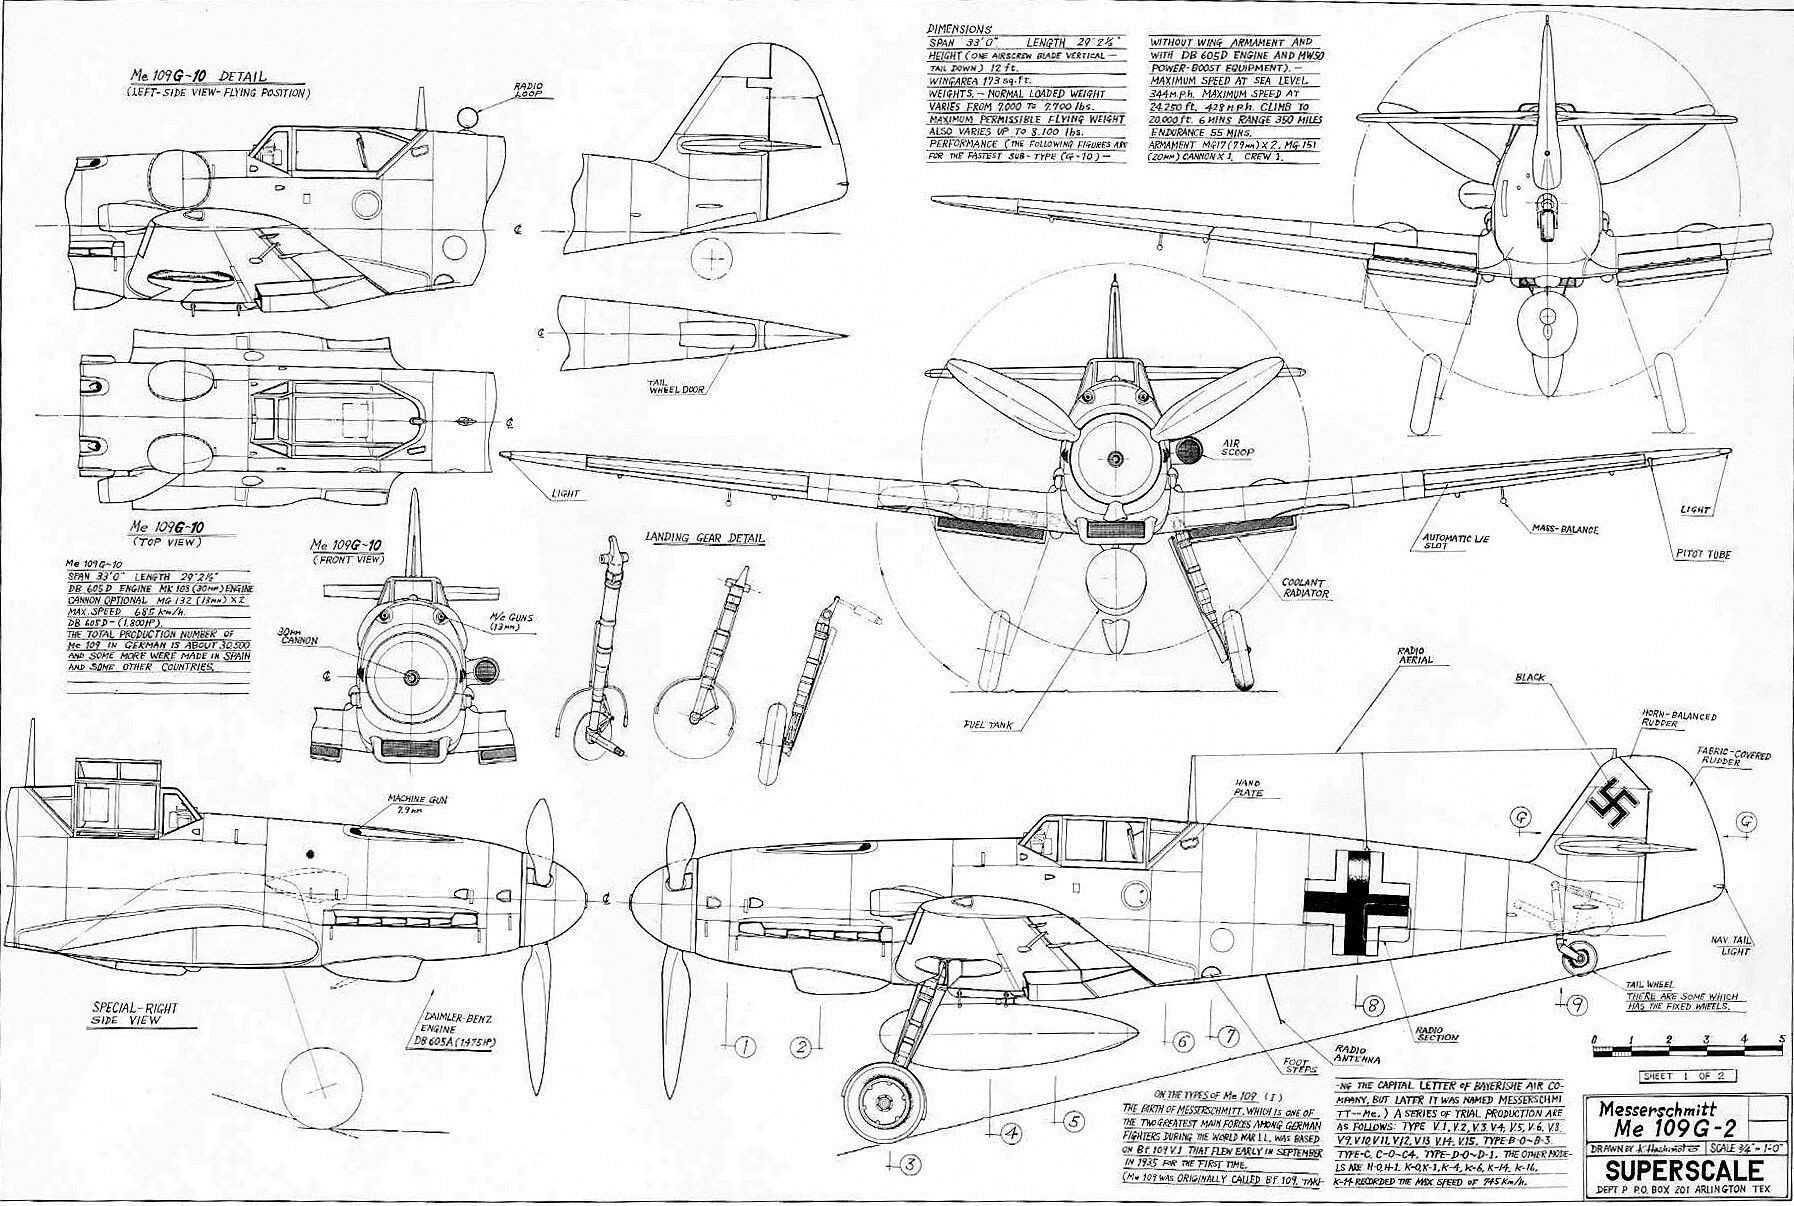 V4 Engine Diagram Pin by Michael Pierson On Ships Pinterest Of V4 Engine Diagram